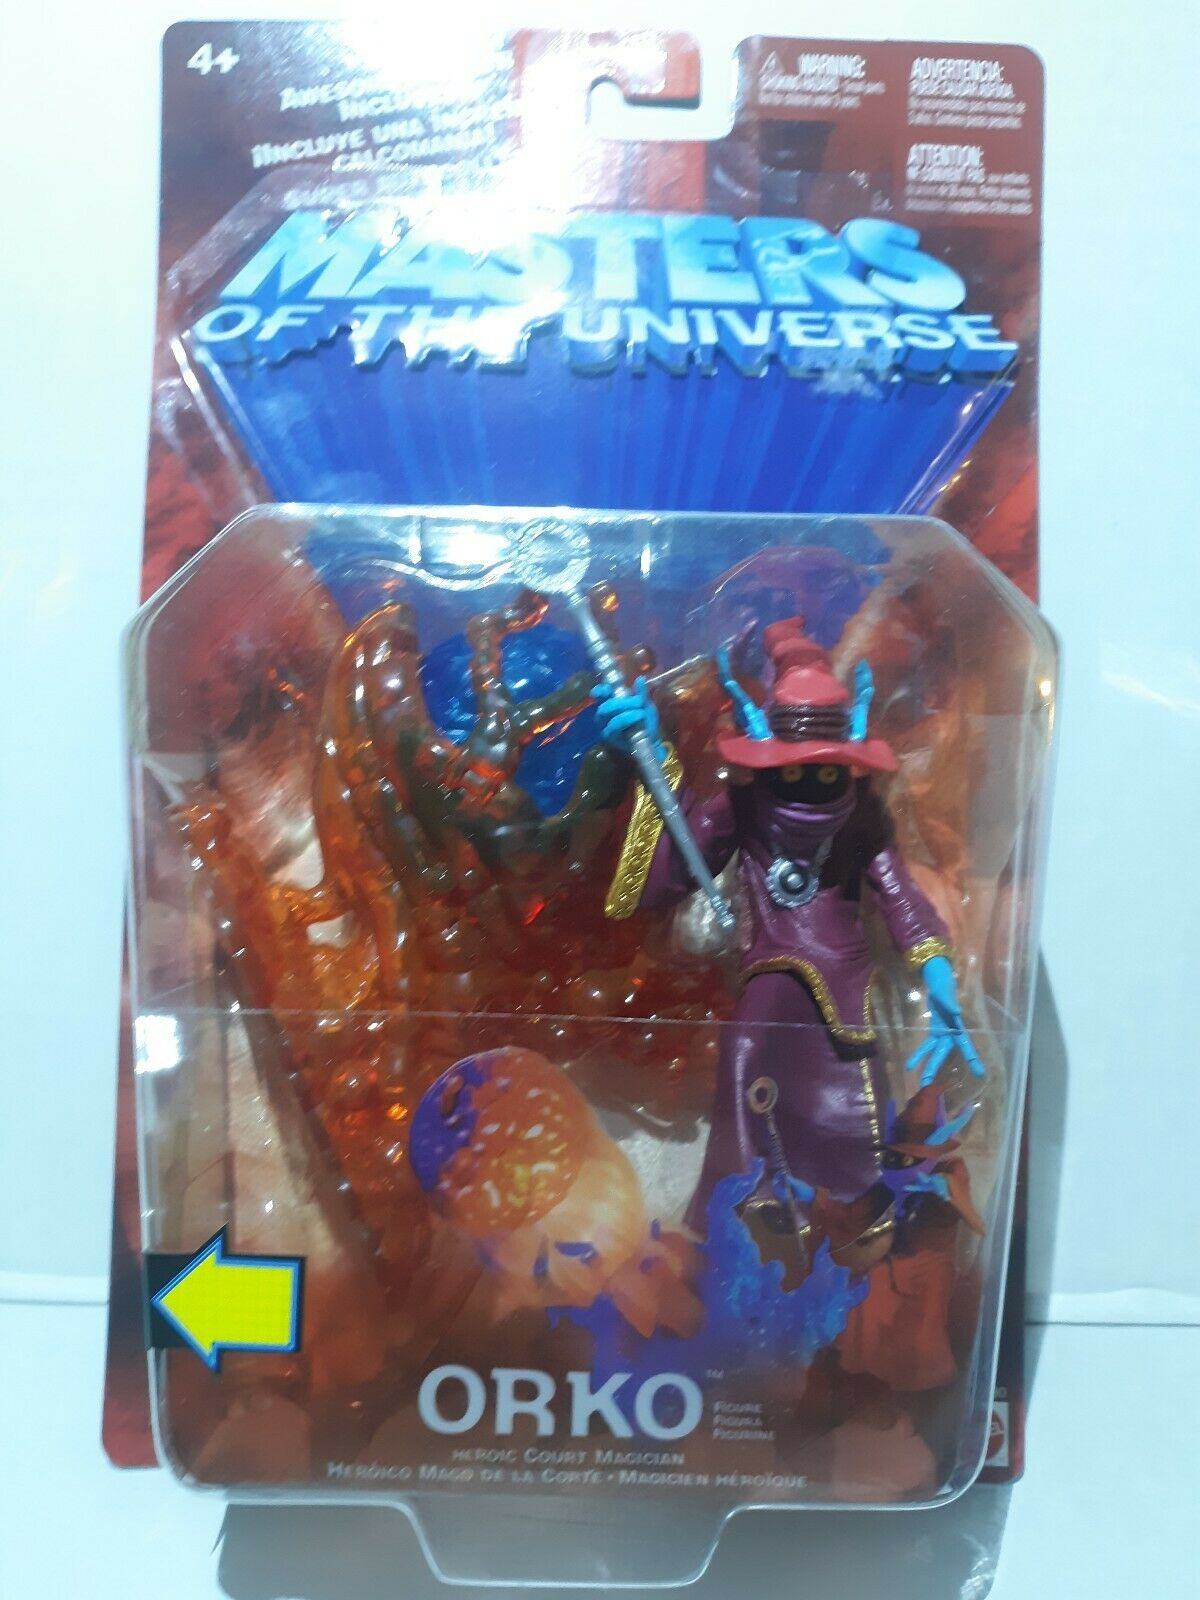 Masters of the universe 200x chase ORKO Variant